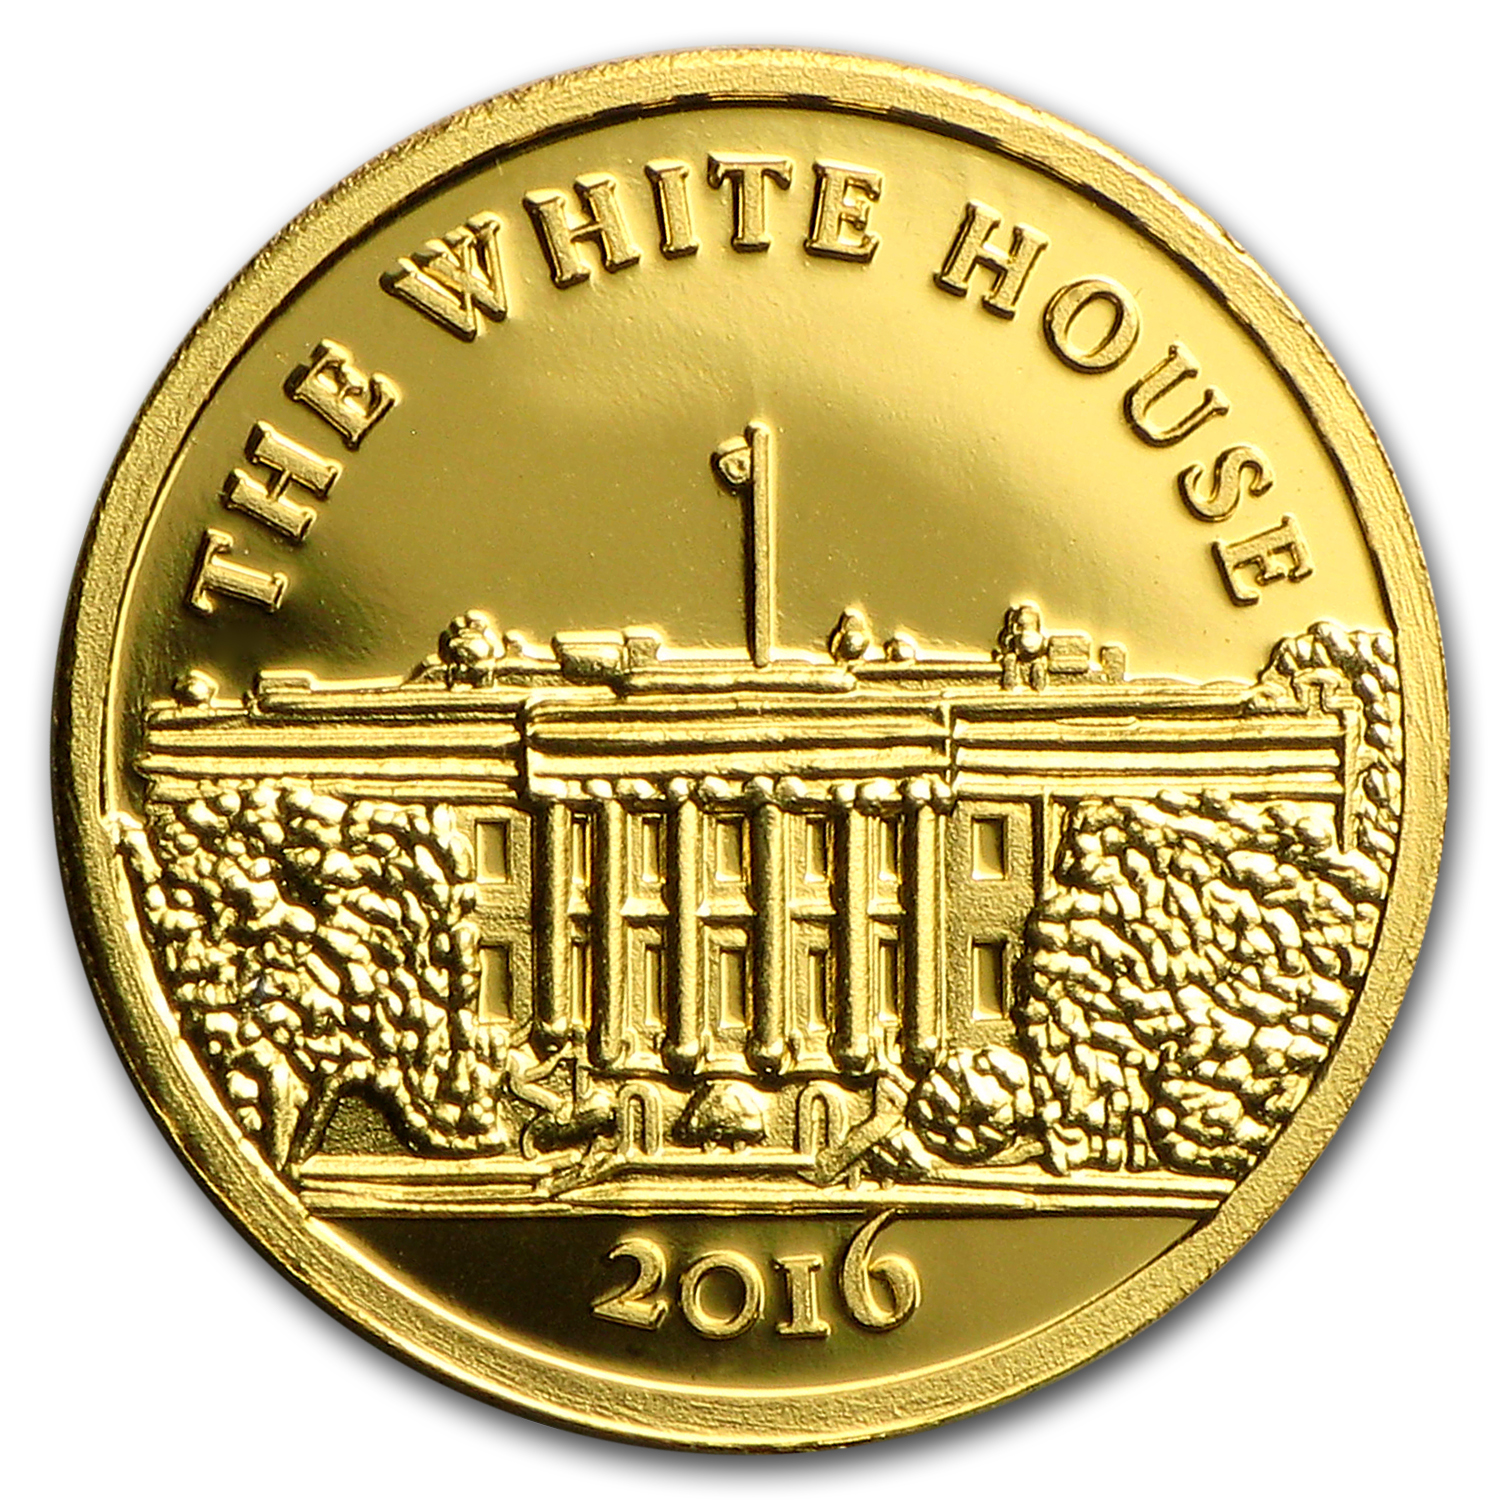 2016 Guinea Gold 1,000 Francs U.S. White House Proof